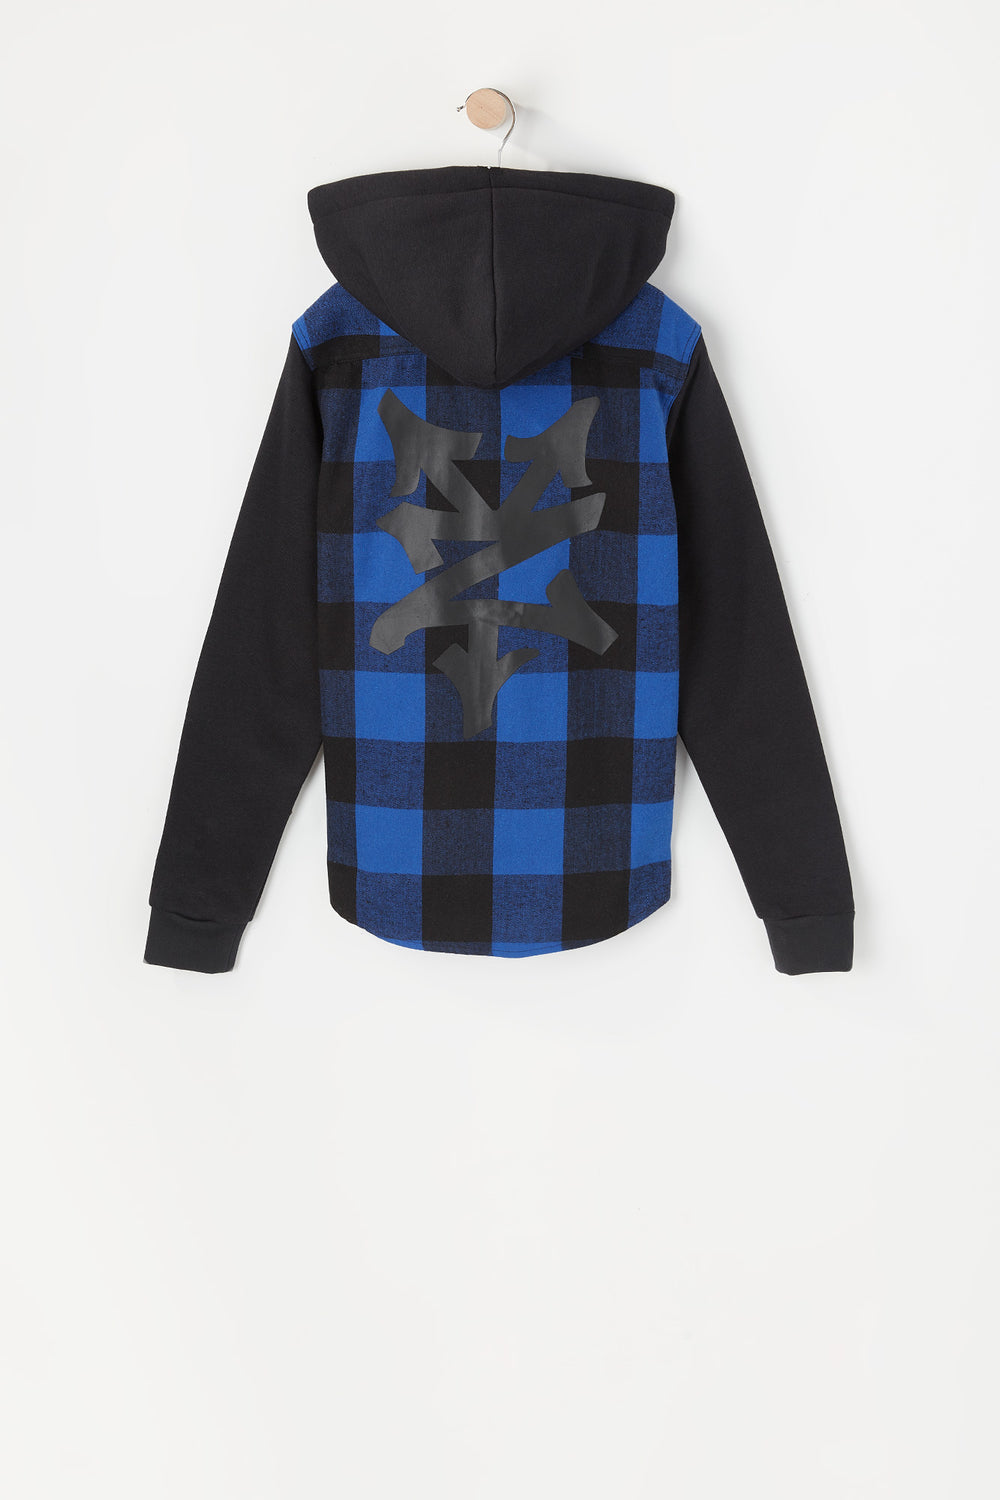 Zoo York Youth Hooded Flannel Button-Up Shirt Blue